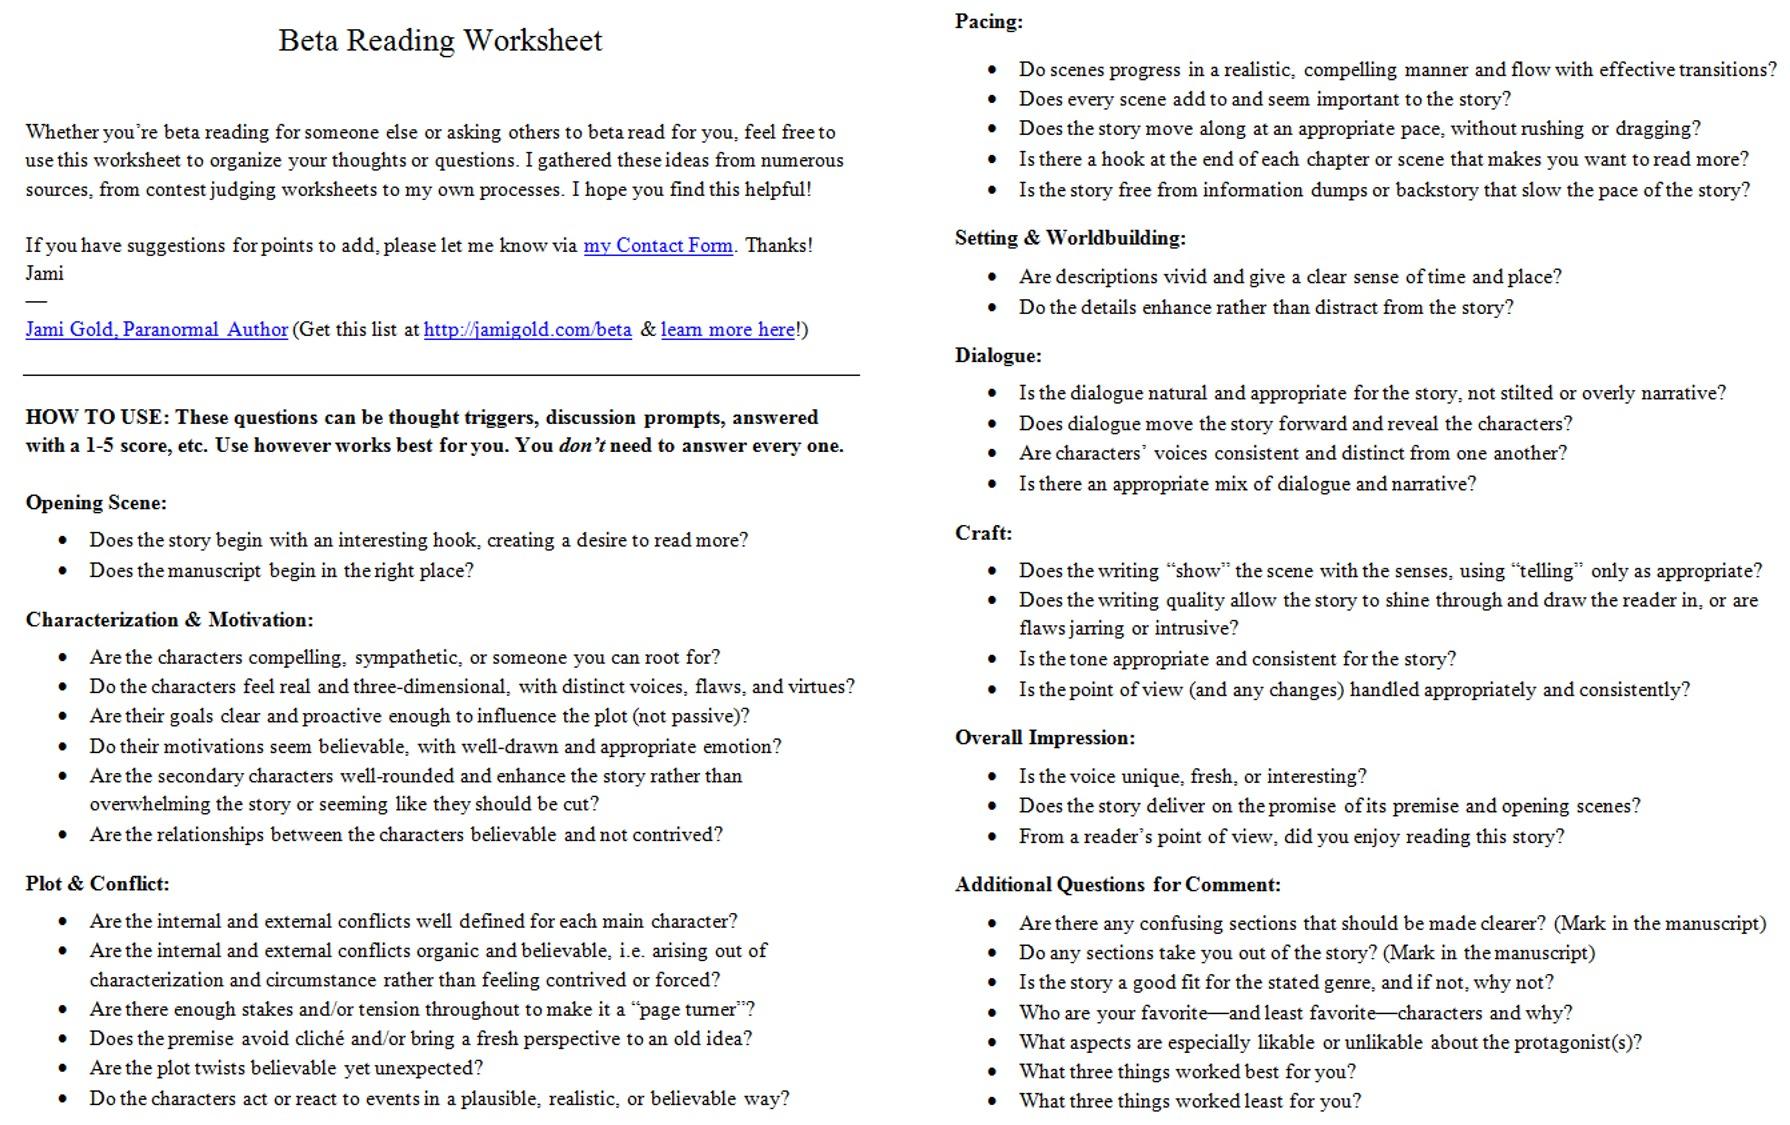 Aldiablosus  Mesmerizing Worksheets For Writers  Jami Gold Paranormal Author With Foxy Screen Shot Of The Twopage Beta Reading Worksheet With Extraordinary Math Translation Worksheet Also Personal Information Worksheet In Addition Pov Worksheets And Free Math Worksheets To Print As Well As Negative And Positive Numbers Worksheet Additionally Indefinite Pronouns Worksheets From Jamigoldcom With Aldiablosus  Foxy Worksheets For Writers  Jami Gold Paranormal Author With Extraordinary Screen Shot Of The Twopage Beta Reading Worksheet And Mesmerizing Math Translation Worksheet Also Personal Information Worksheet In Addition Pov Worksheets From Jamigoldcom